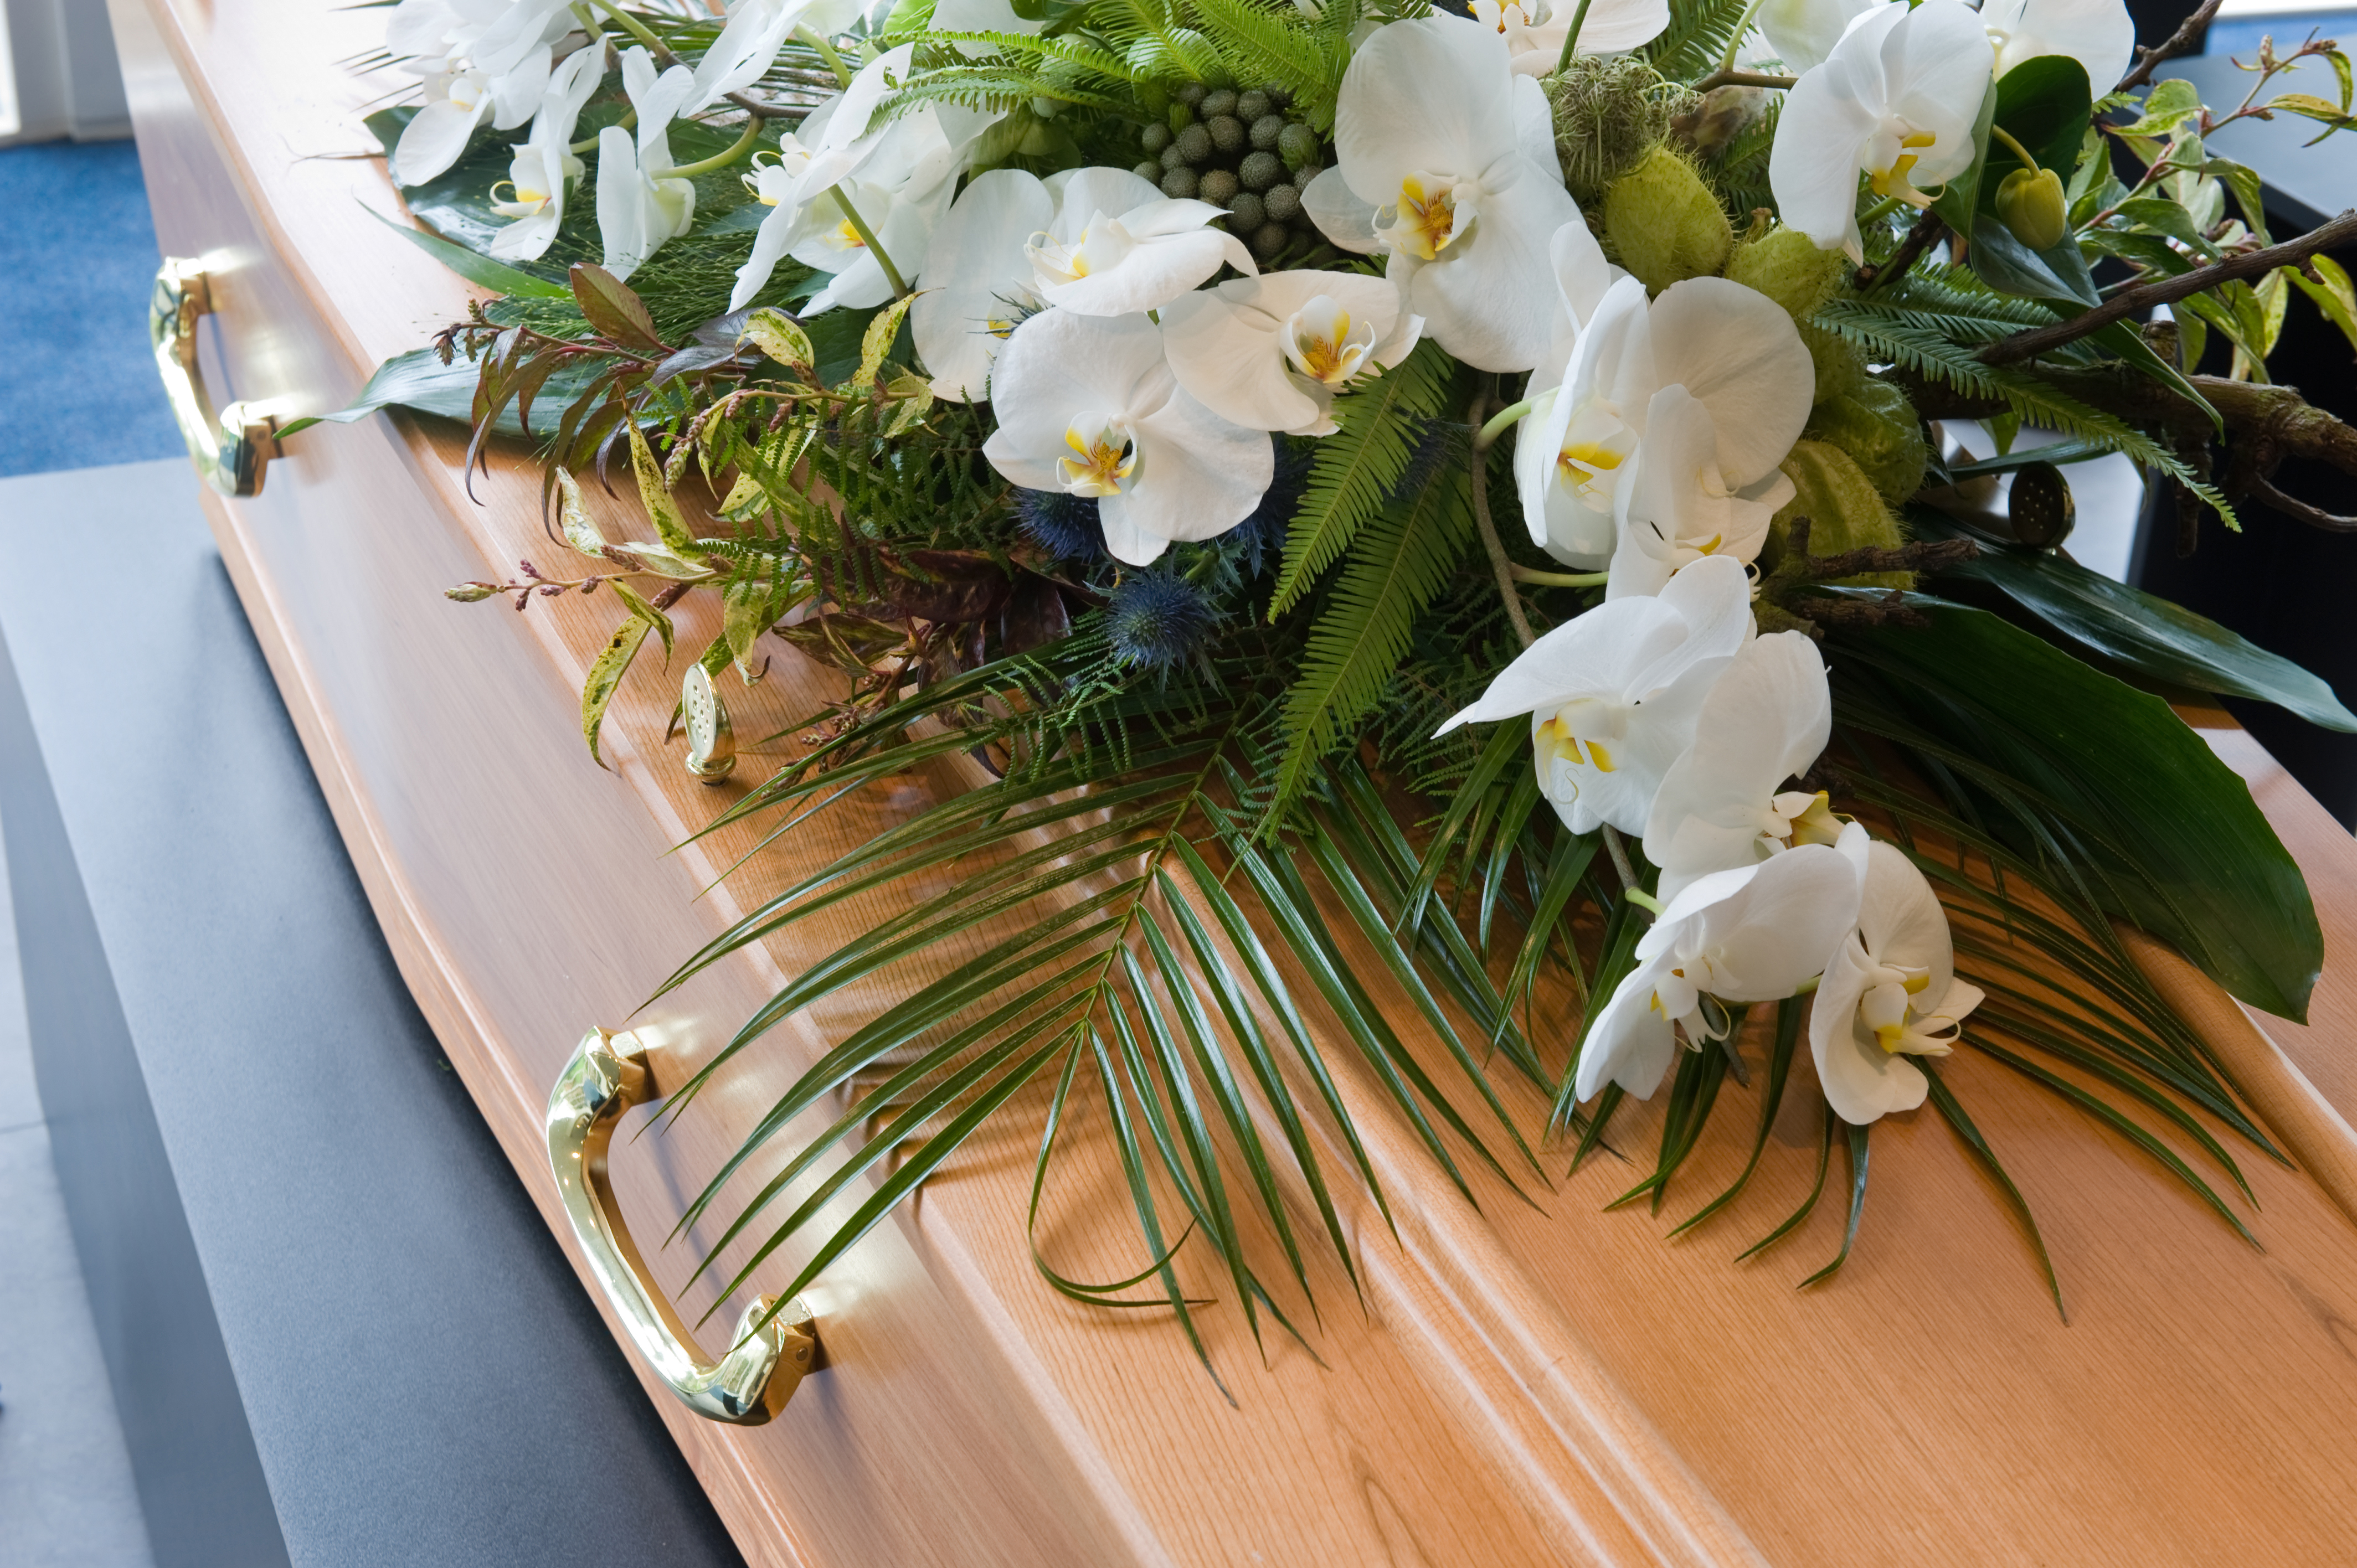 How Much Does It Cost to Start a Funeral Home? | Bizfluent